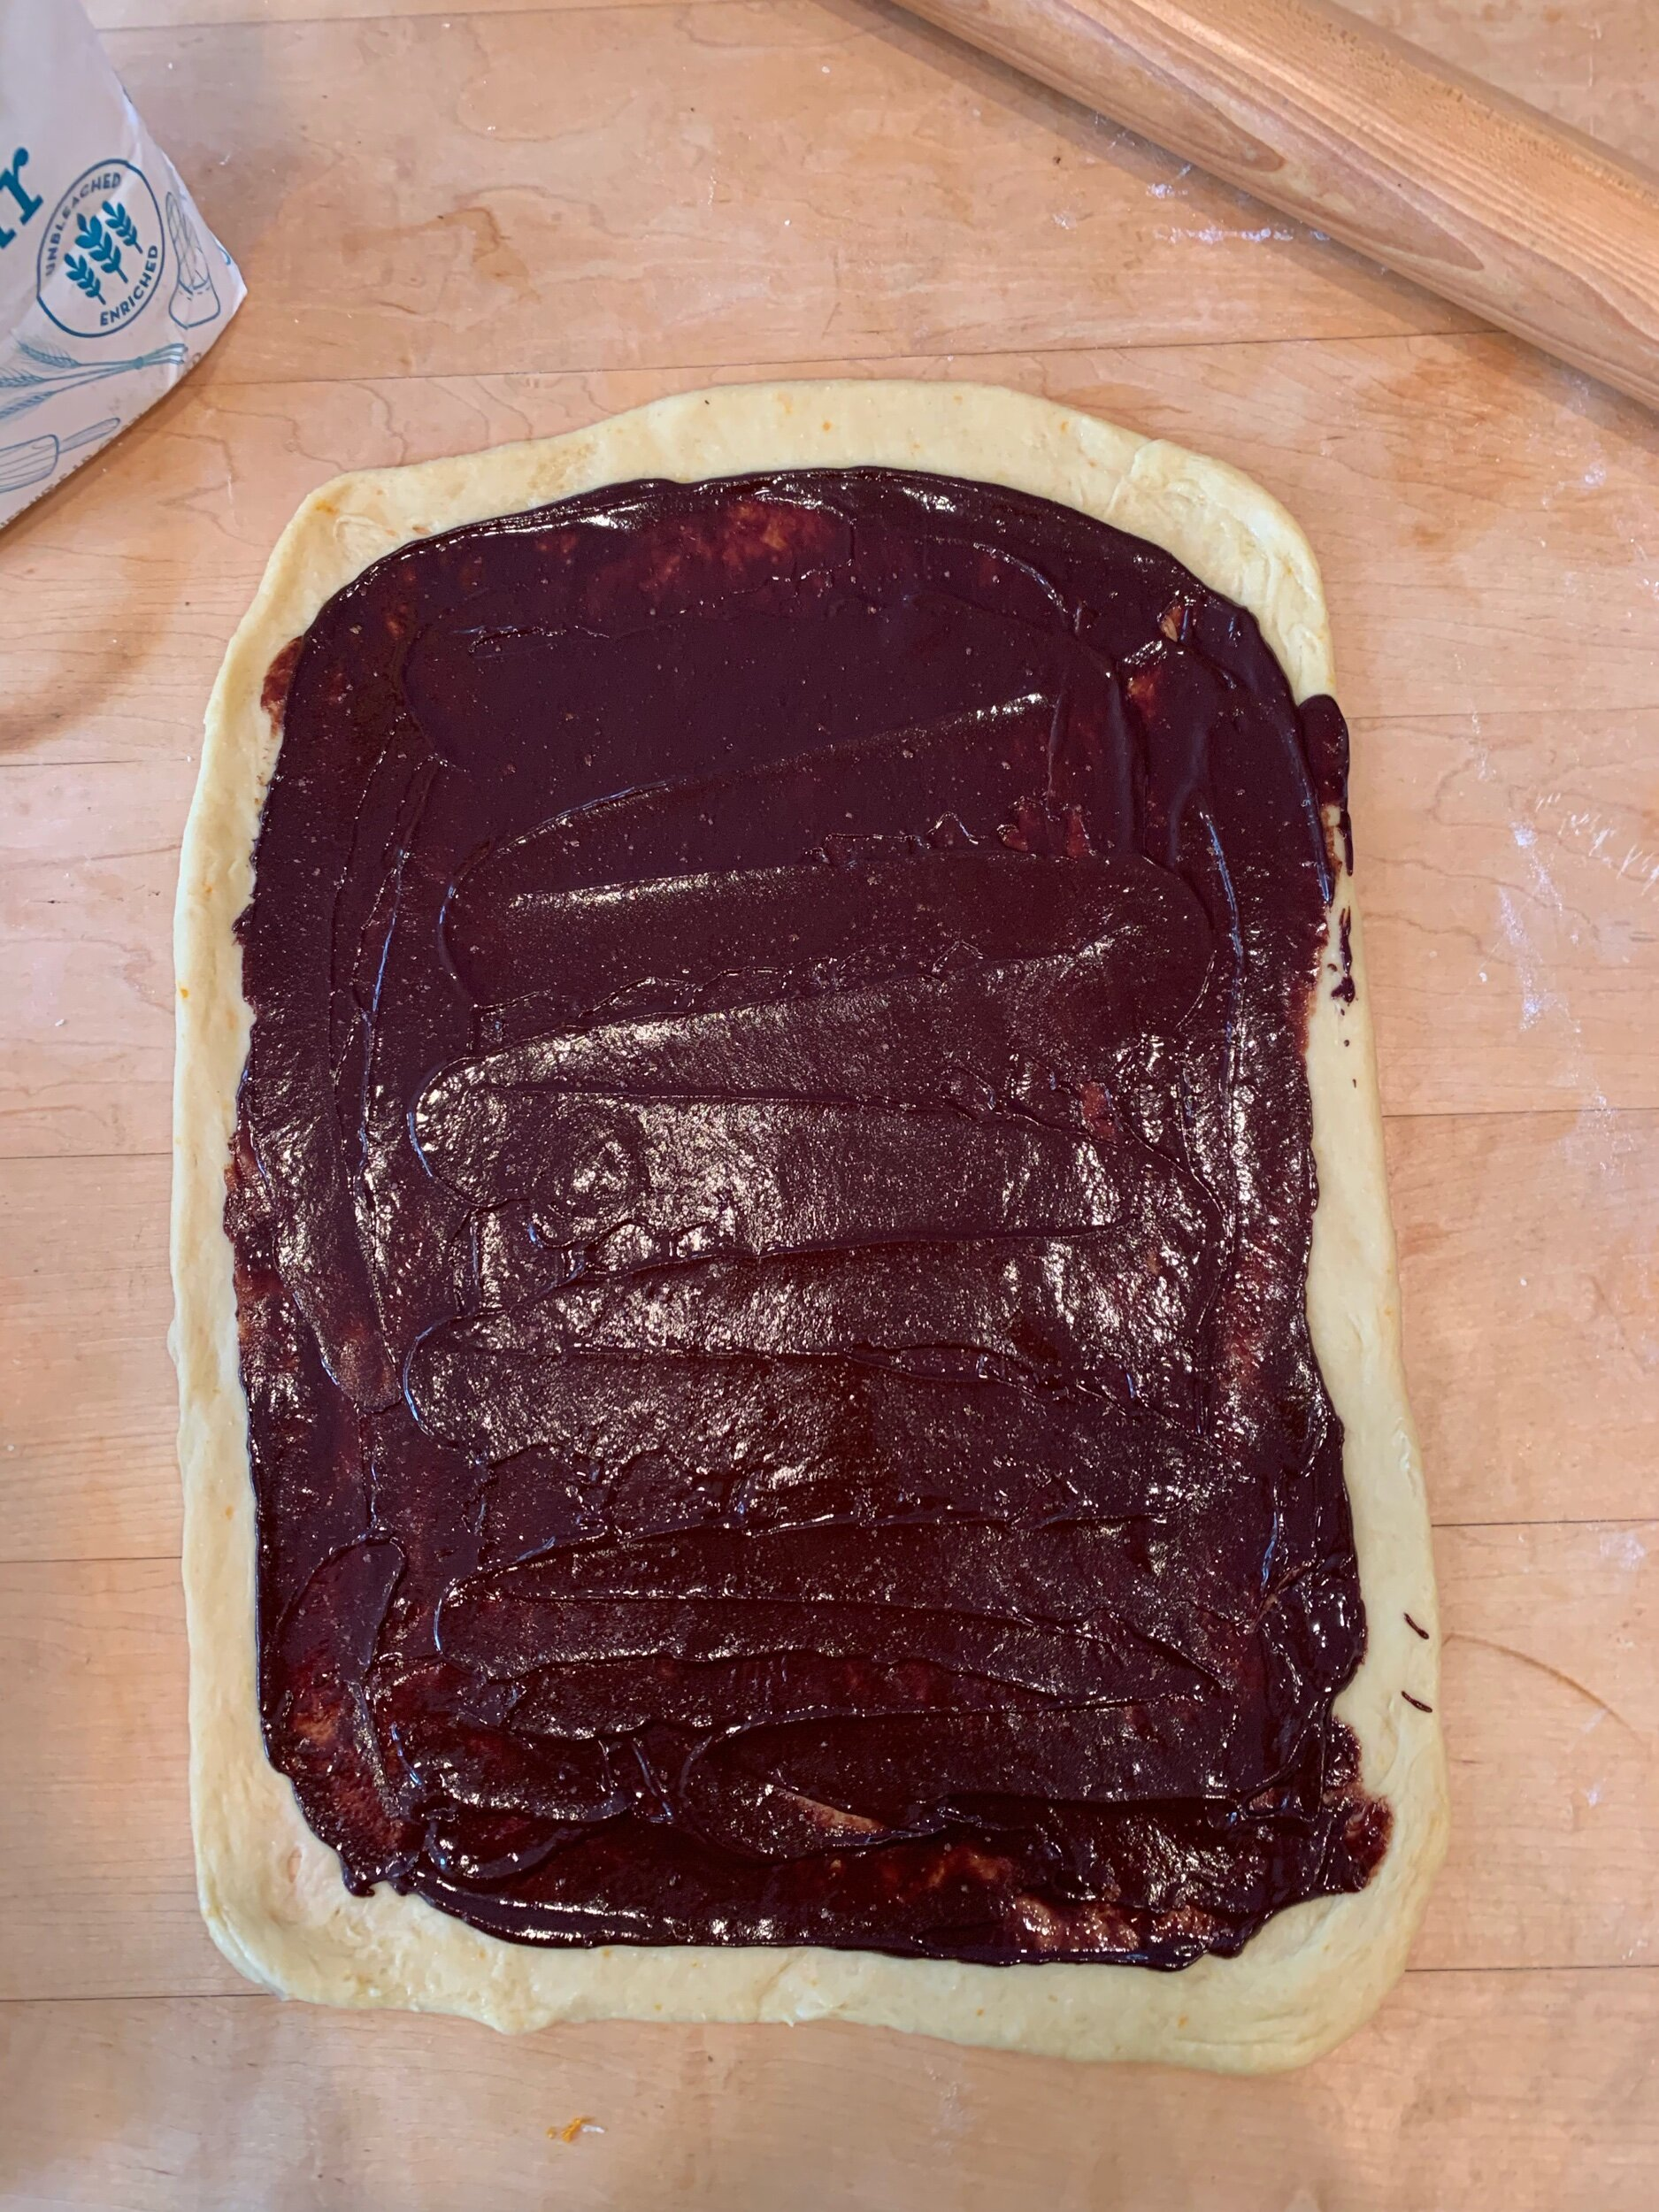 Roll the dough and then spread with the chocolate filling.